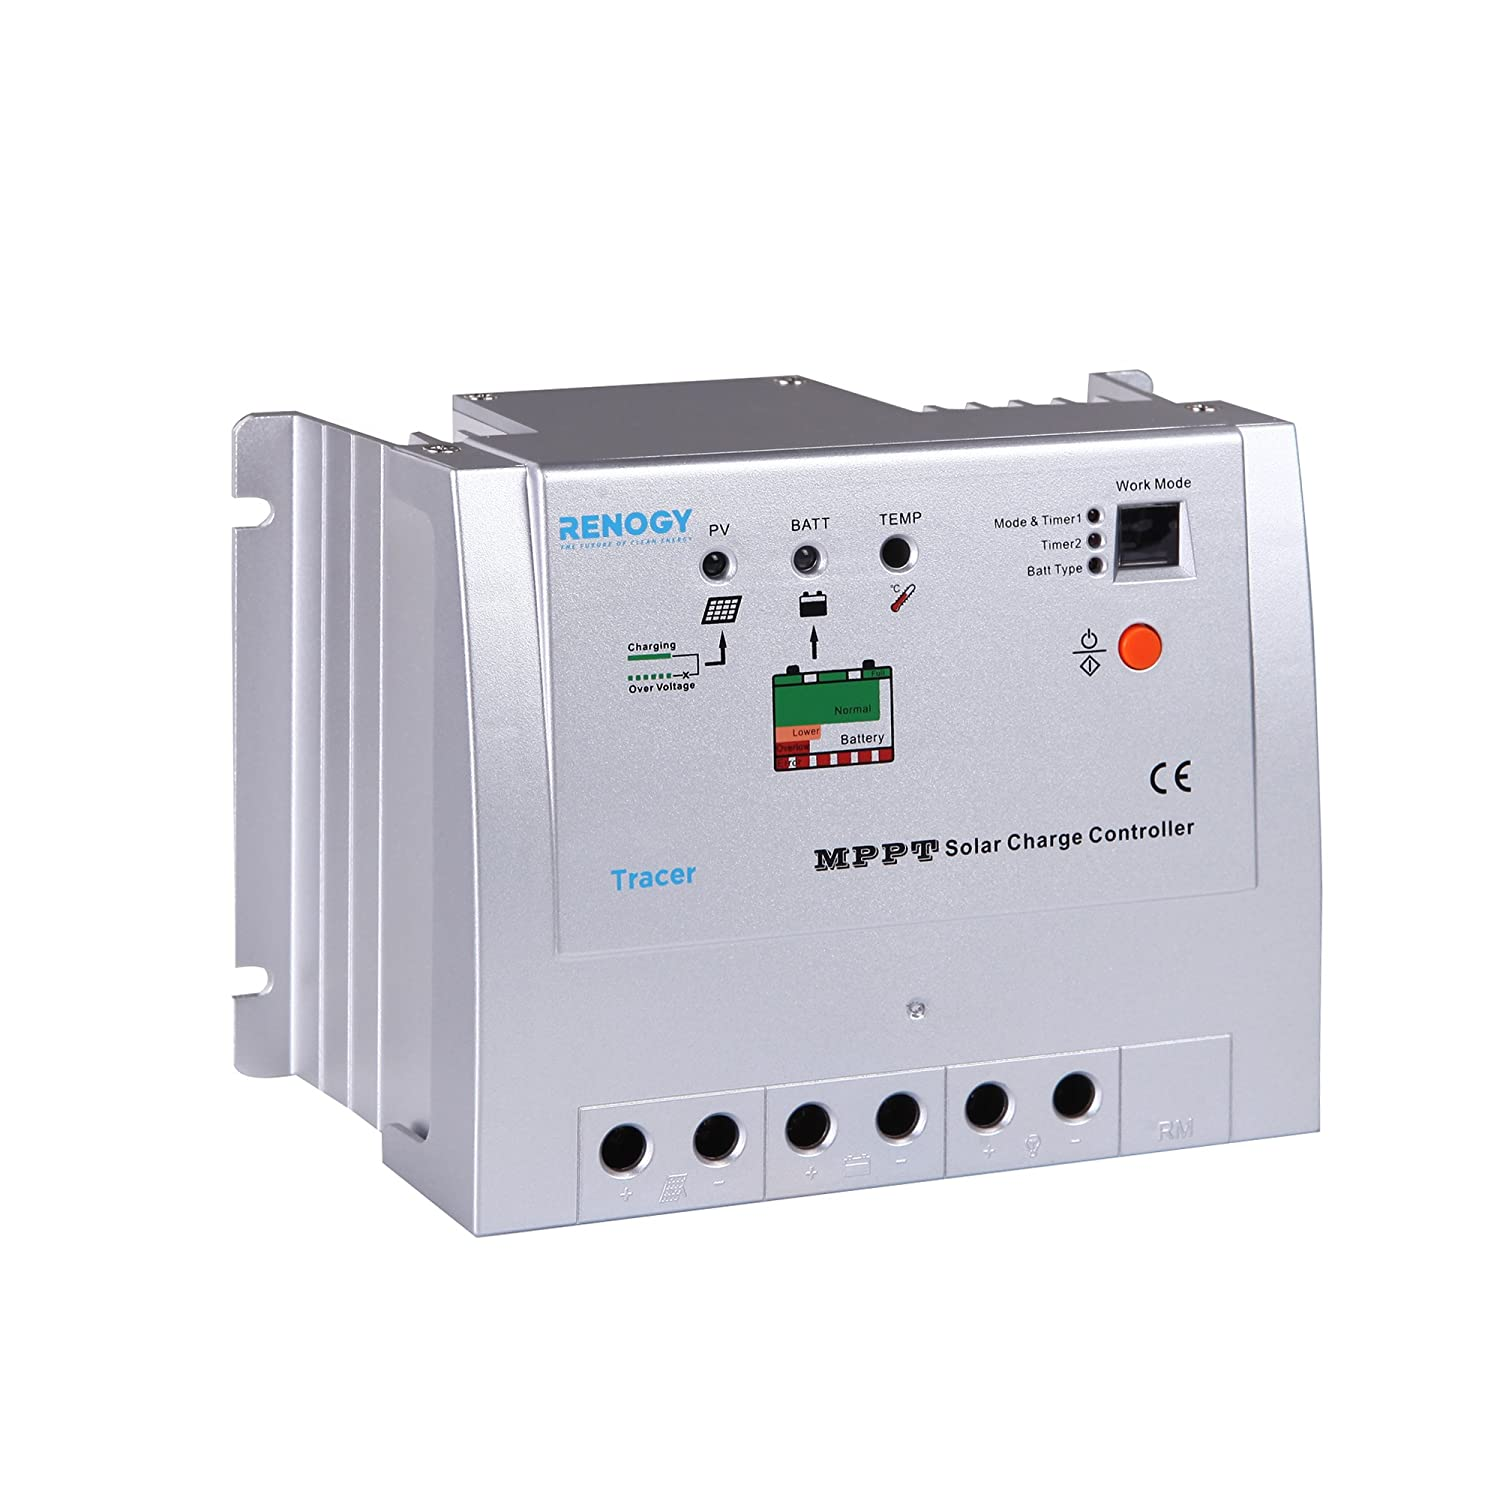 Phase Wiring Microcare Solar Components Renogy 20 Amp Mppt Charge Controller Renewable Energy Controllers Garden Outdoor